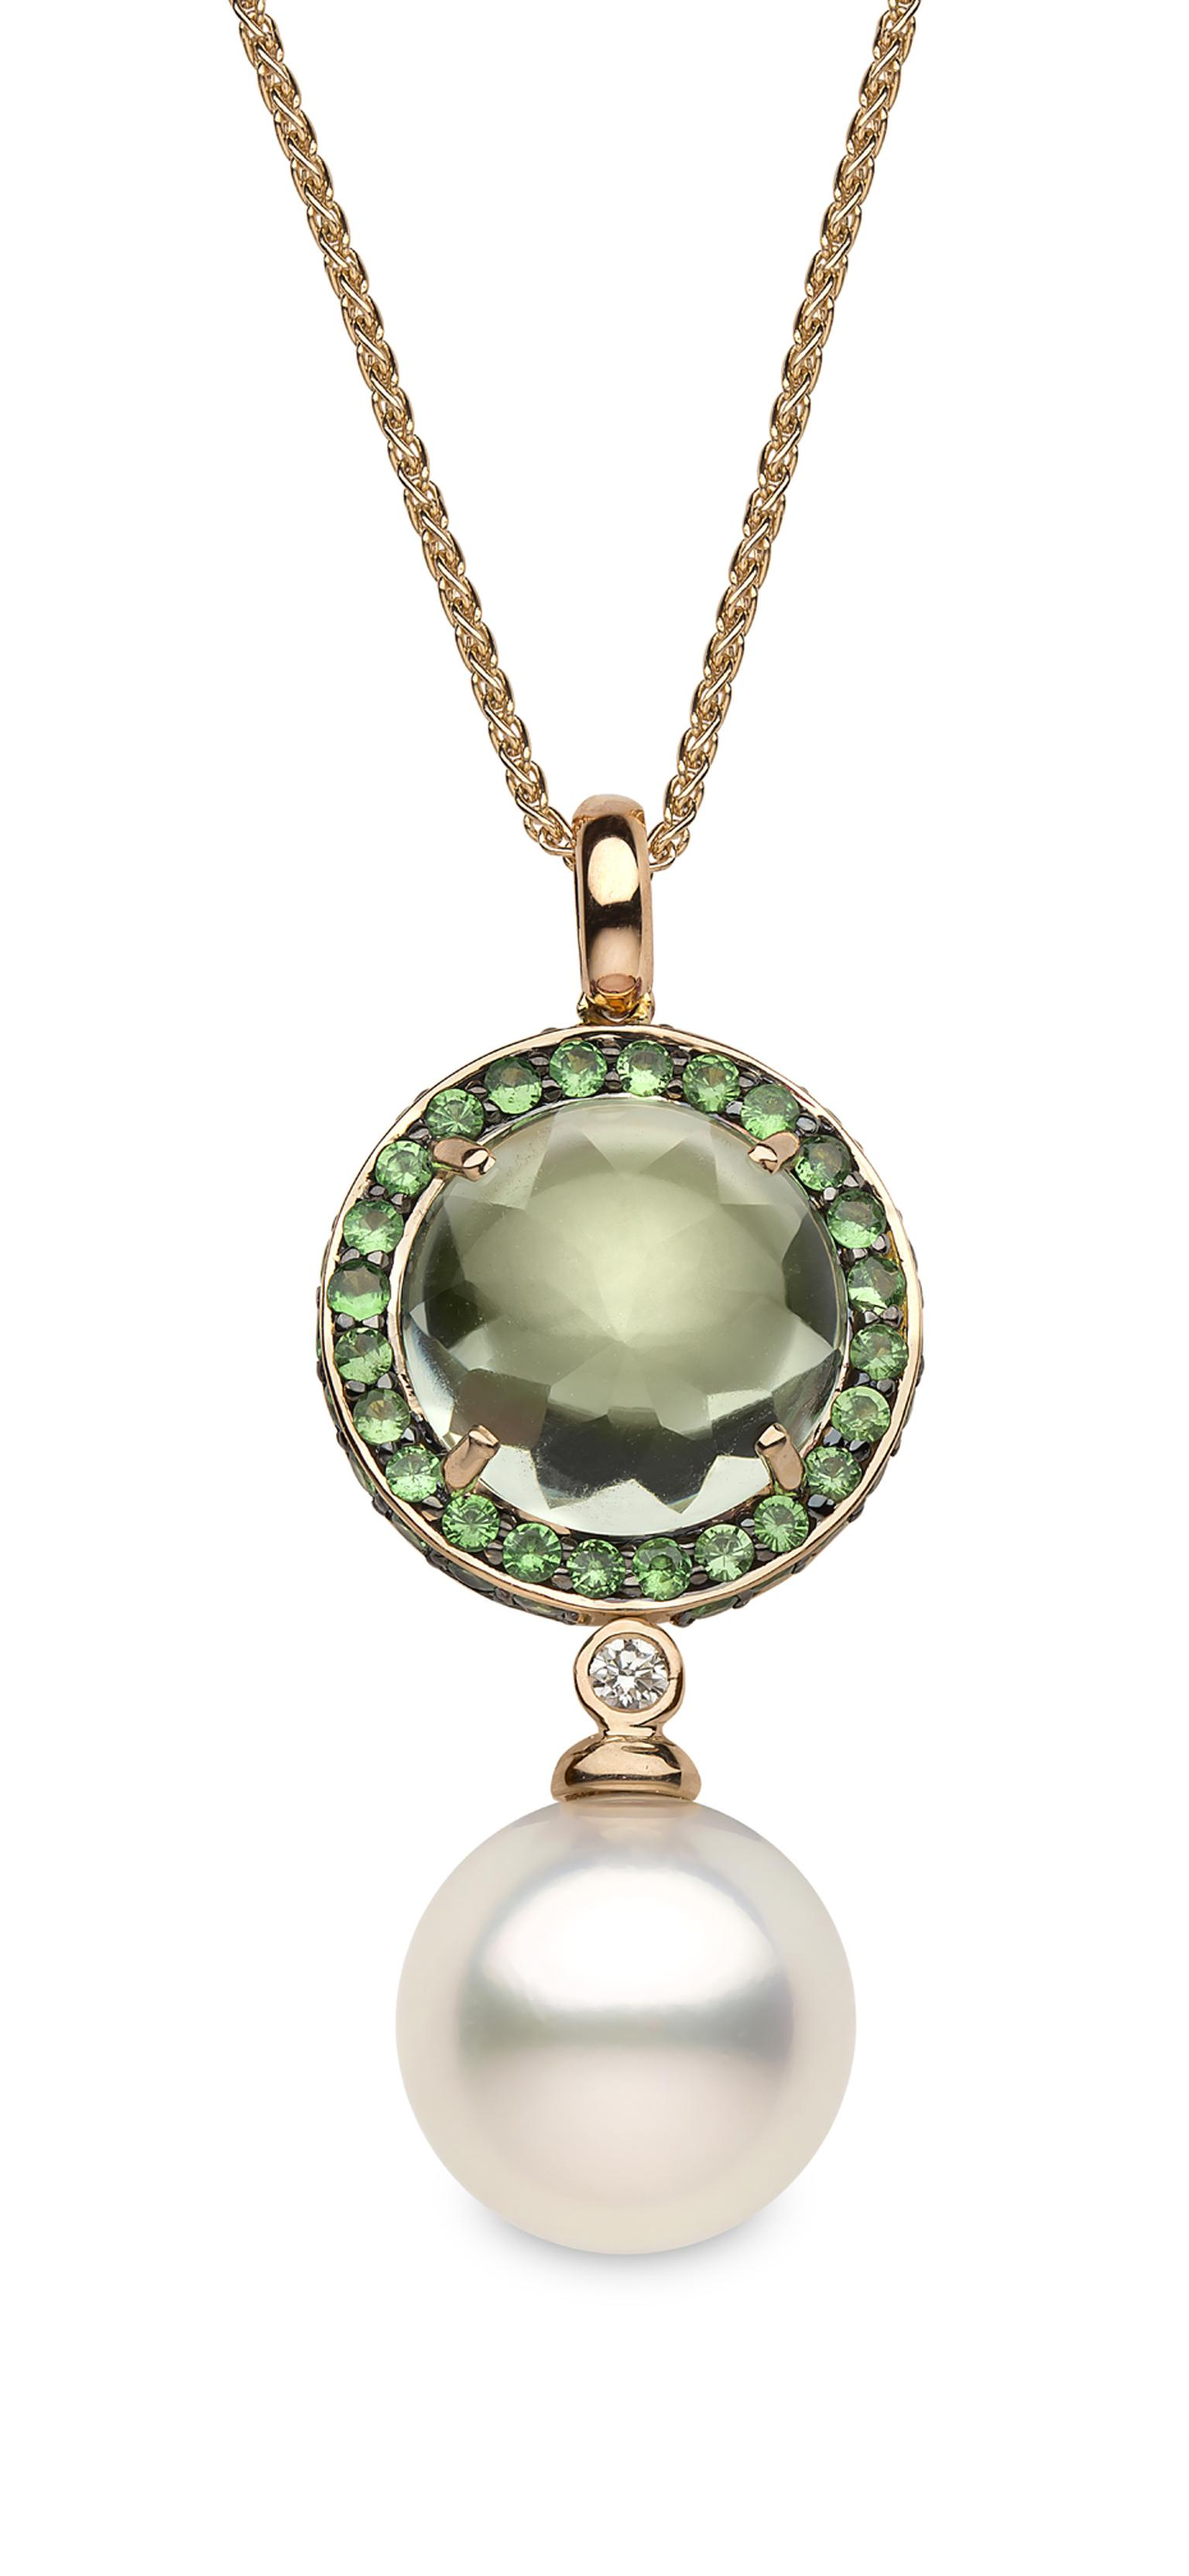 Yoko London rose gold pendant featuring a white Australian South Sea pearl, green amethysts, a central tsavorite and diamonds